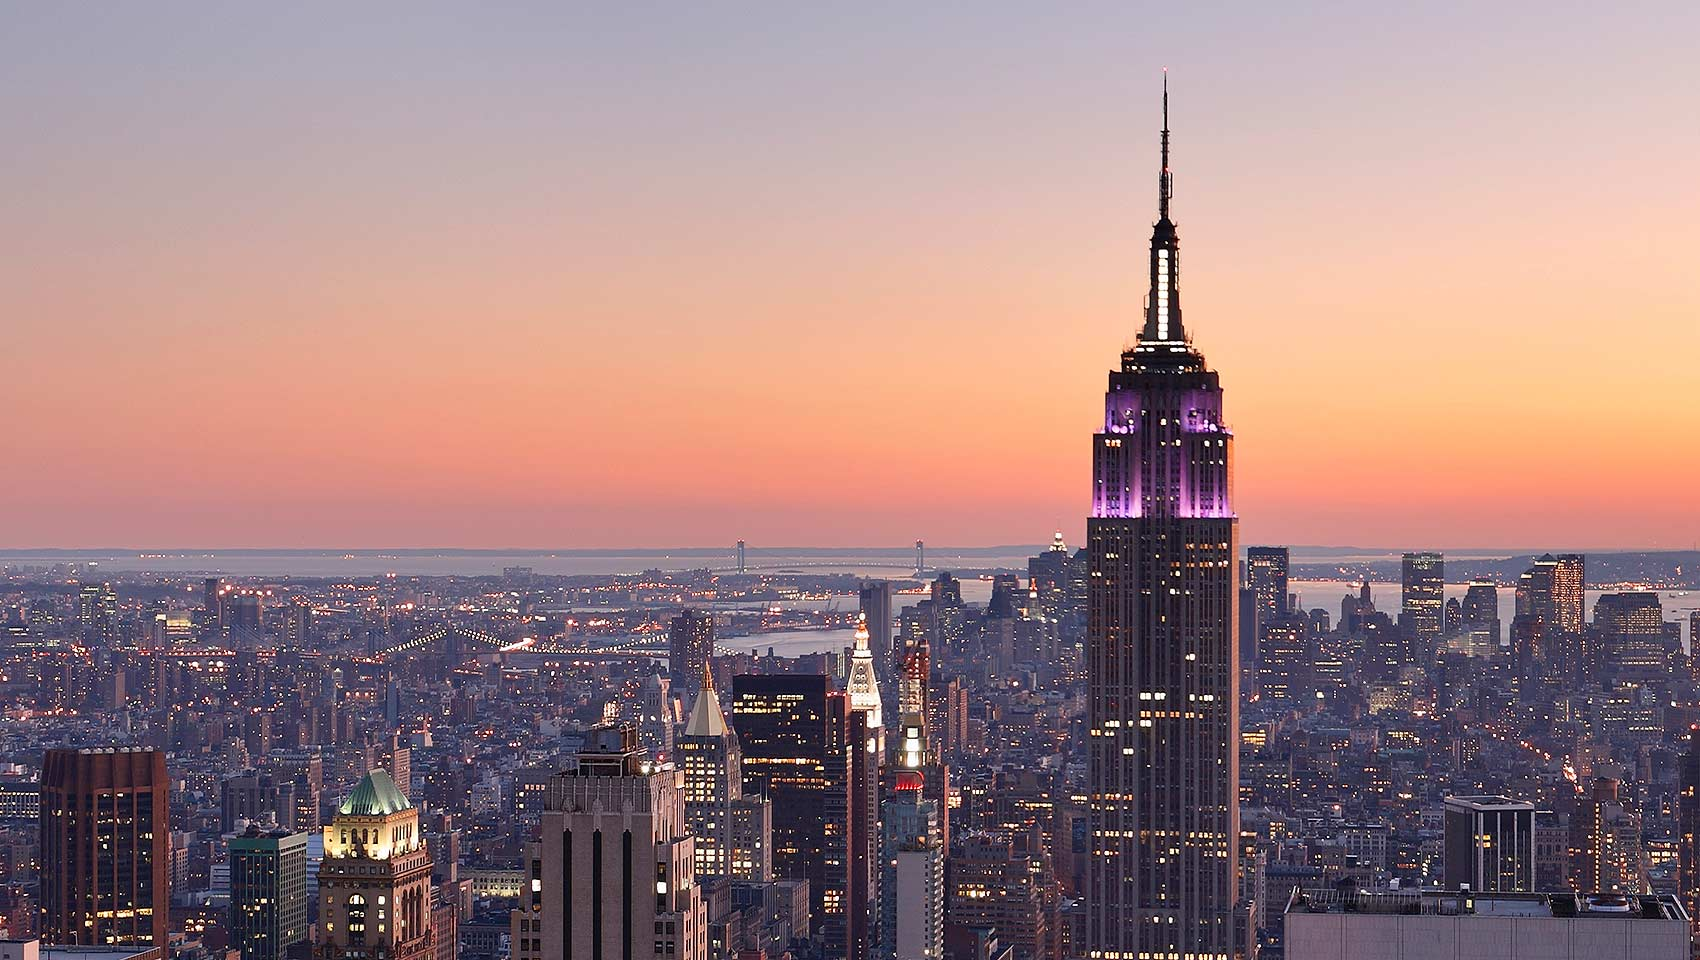 new-york-city-skyline-at-dusk-zo-cf1a9c35-1